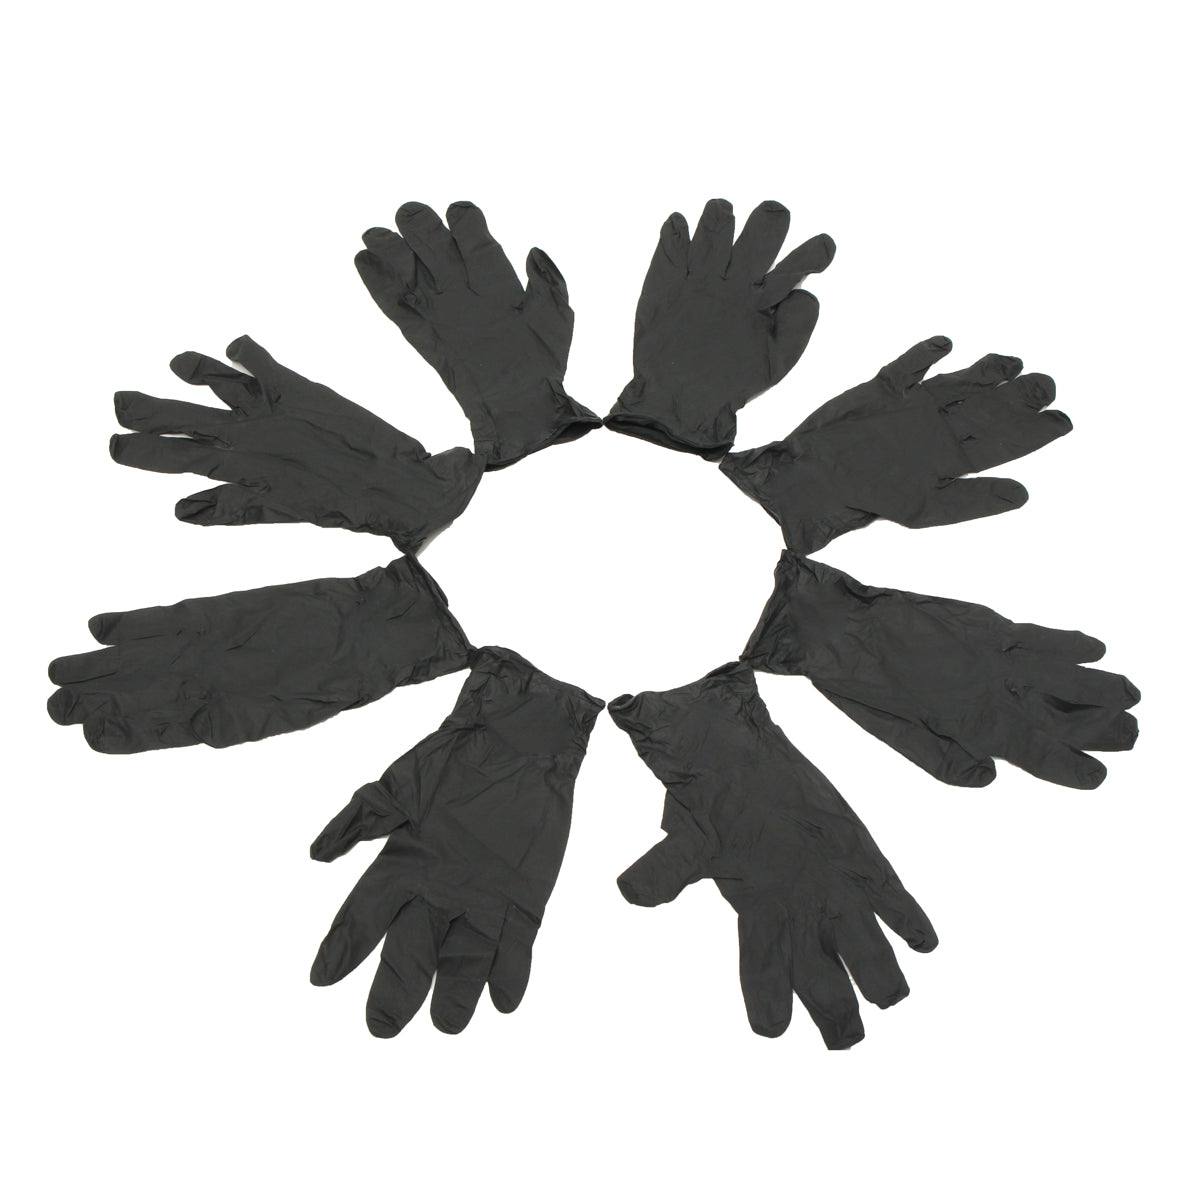 100Pcs S/M/L Black Latex-free Gloves Disposable Gloves Nitrile - Tattoo Piercing Mechanic Medical Gloves